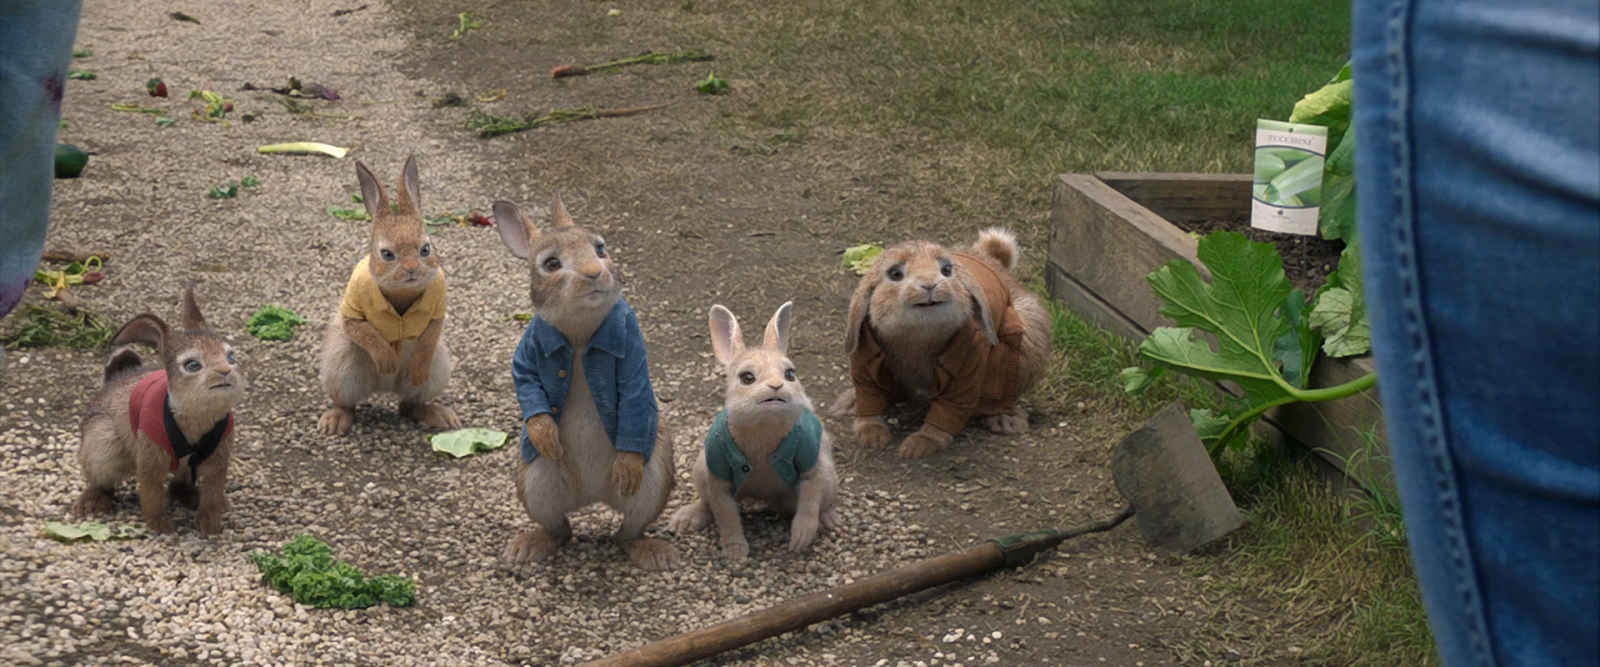 Las Travesuras de Peter Rabbit (2018) BRRip 720p Latino-Ingles captura 4